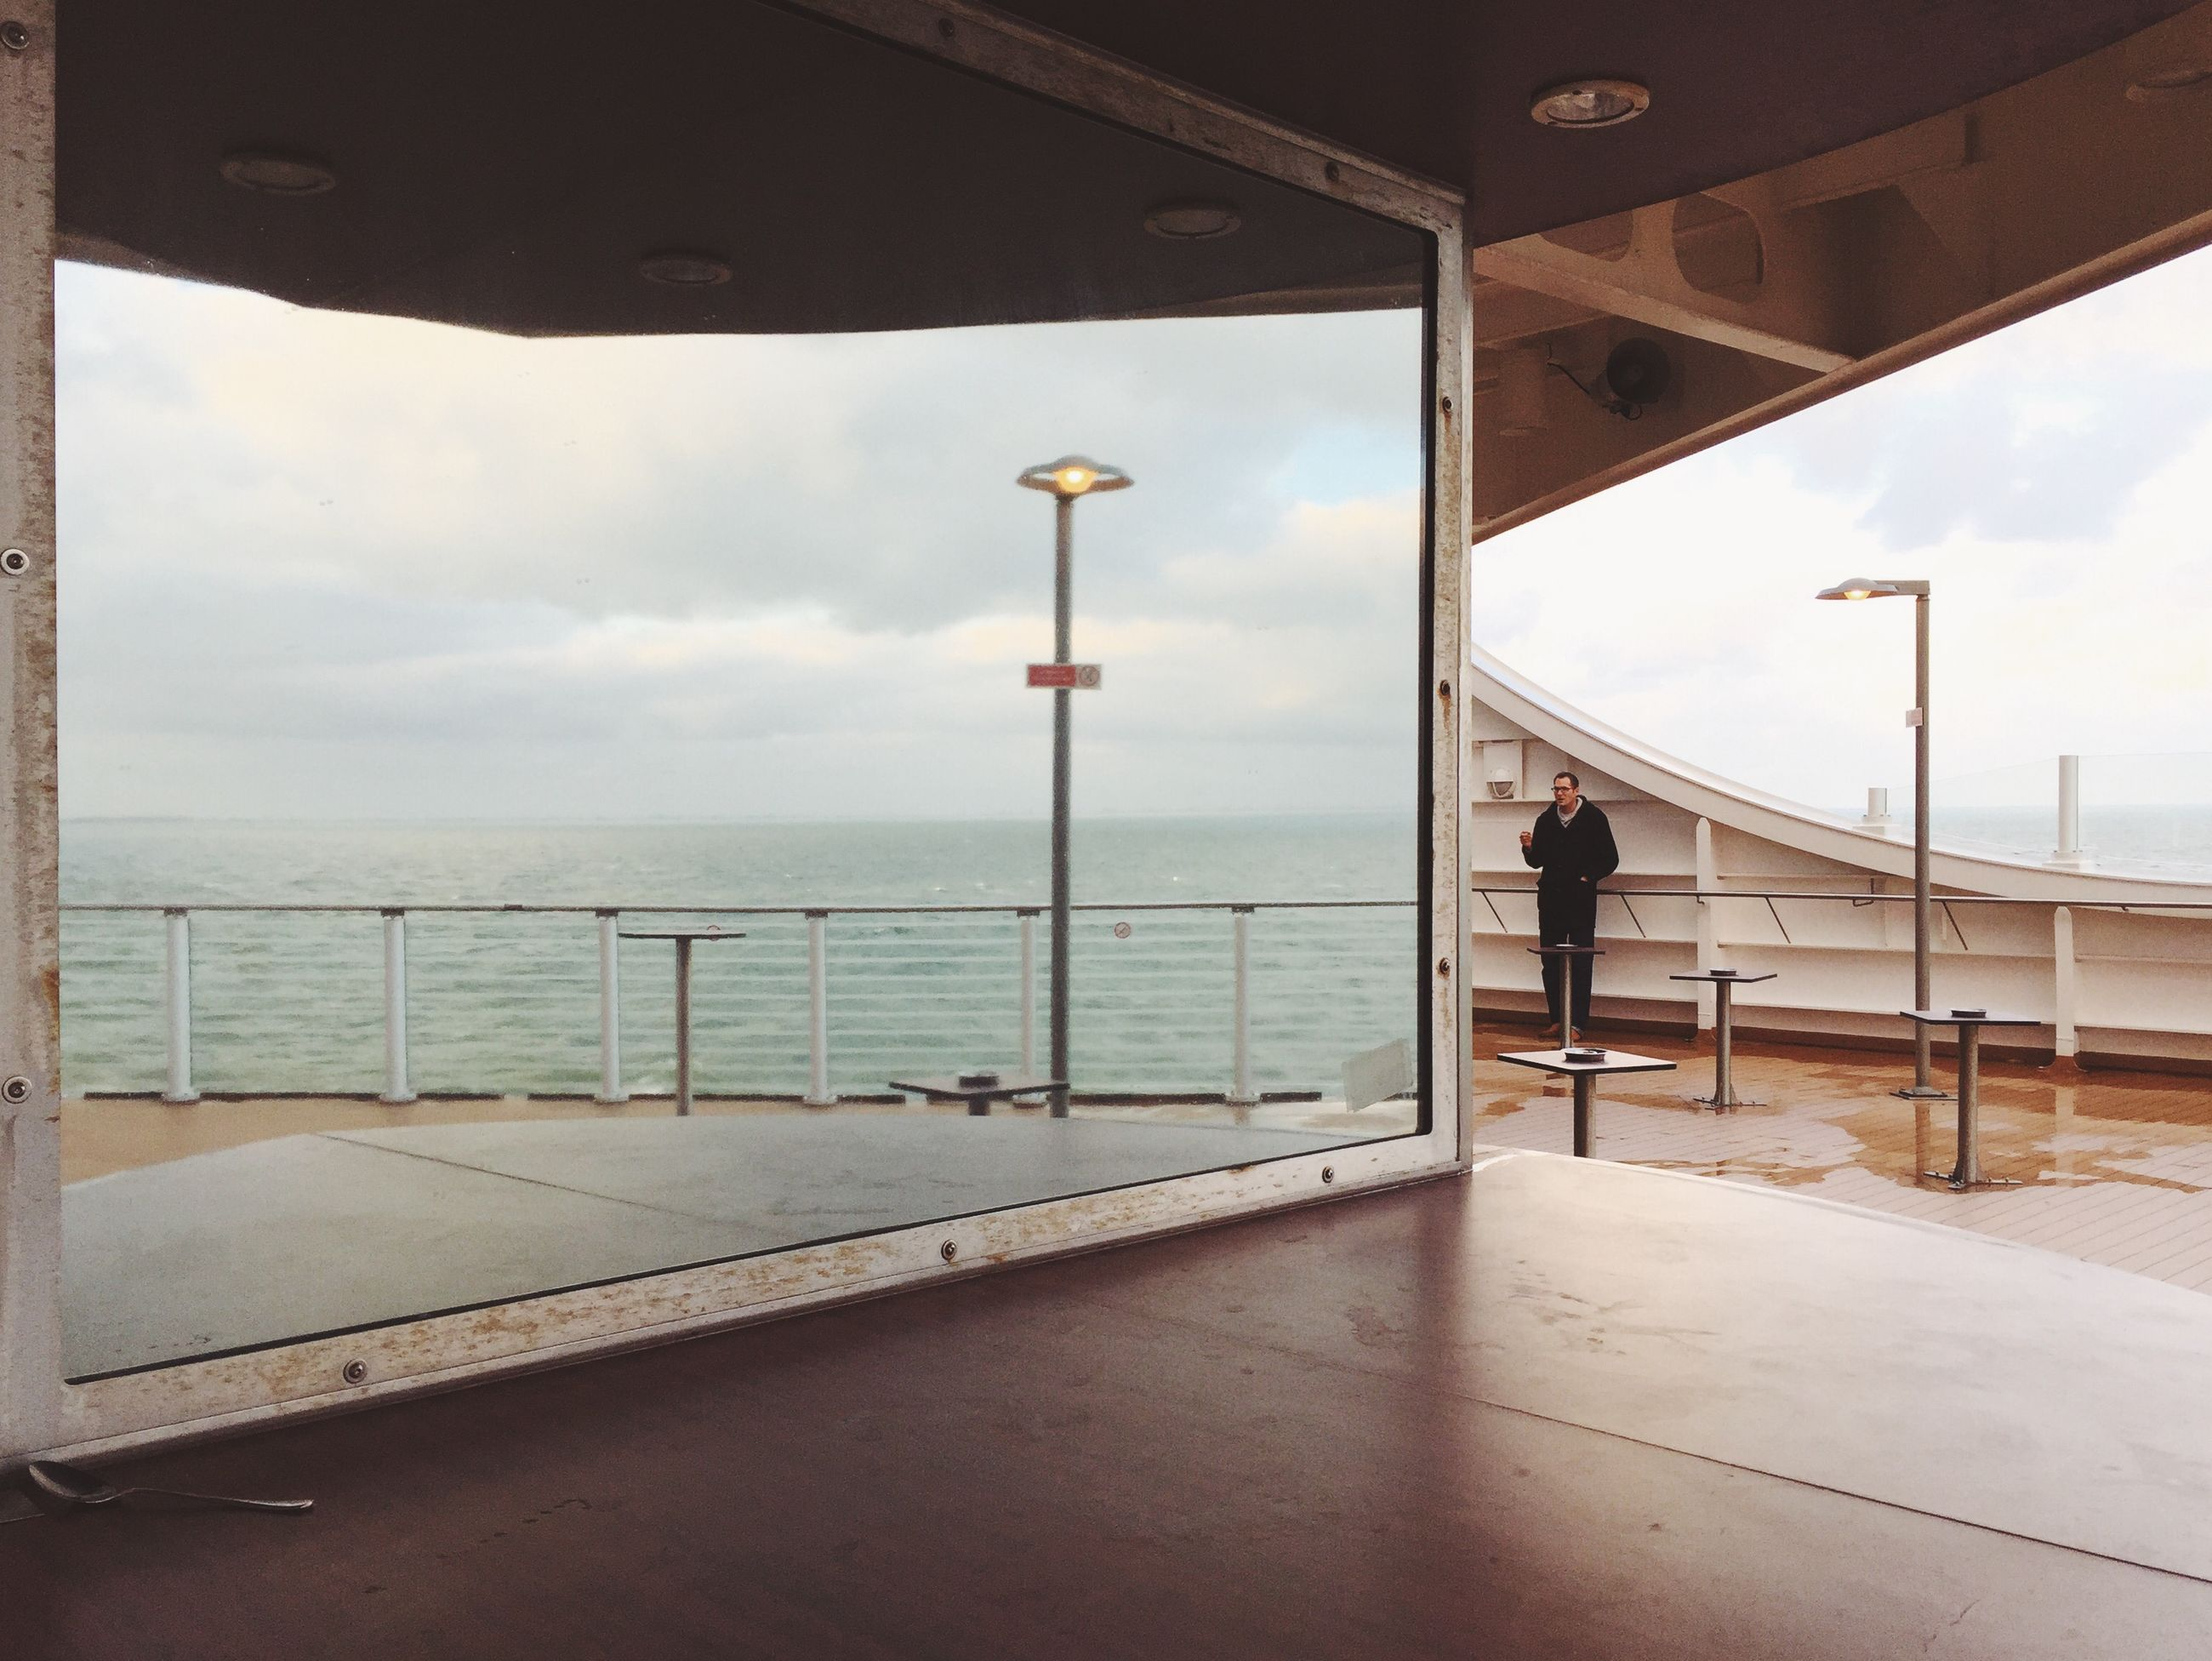 sea, sky, horizon over water, water, men, railing, lifestyles, built structure, leisure activity, rear view, indoors, architecture, cloud - sky, full length, standing, person, street light, walking